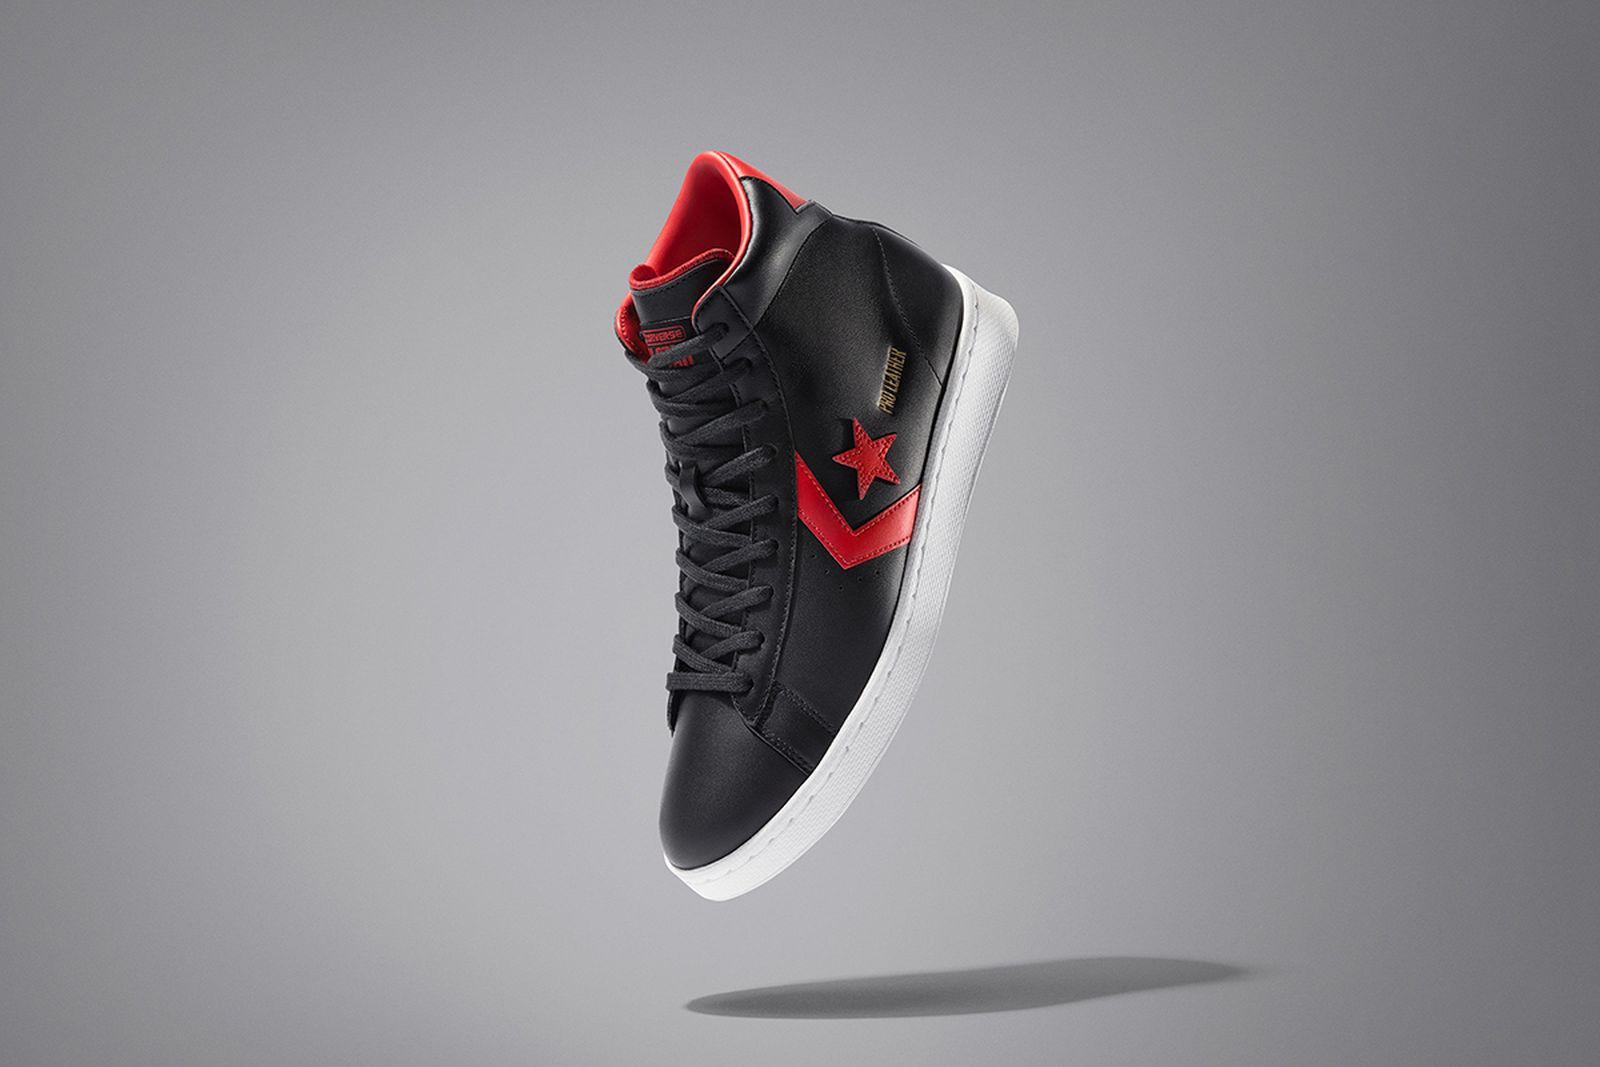 nike-nba-all-star-2020-collection-release-date-price-2-08